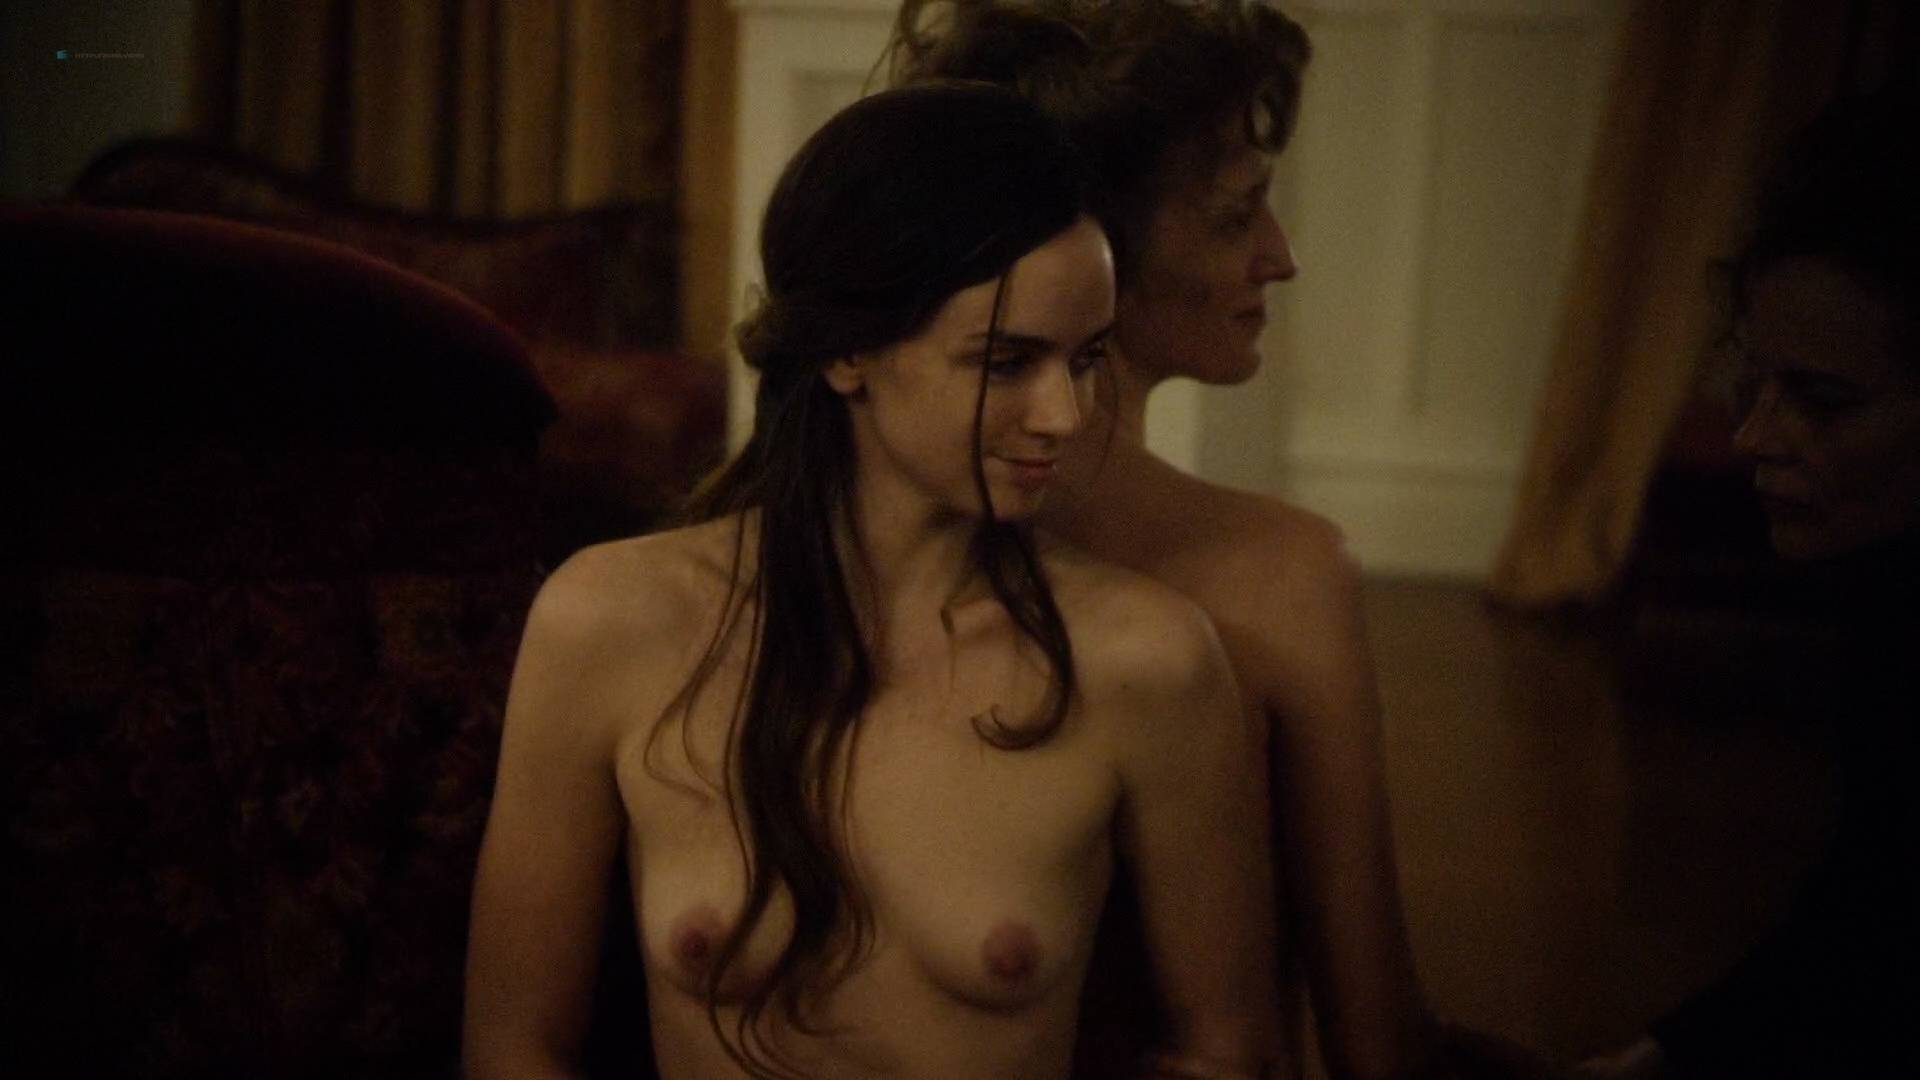 Allie Gallerani nude full frontal Amber Coney, Zoe Bleu, and other's nude too - The Institute (2017) HD 1080p Web (3)